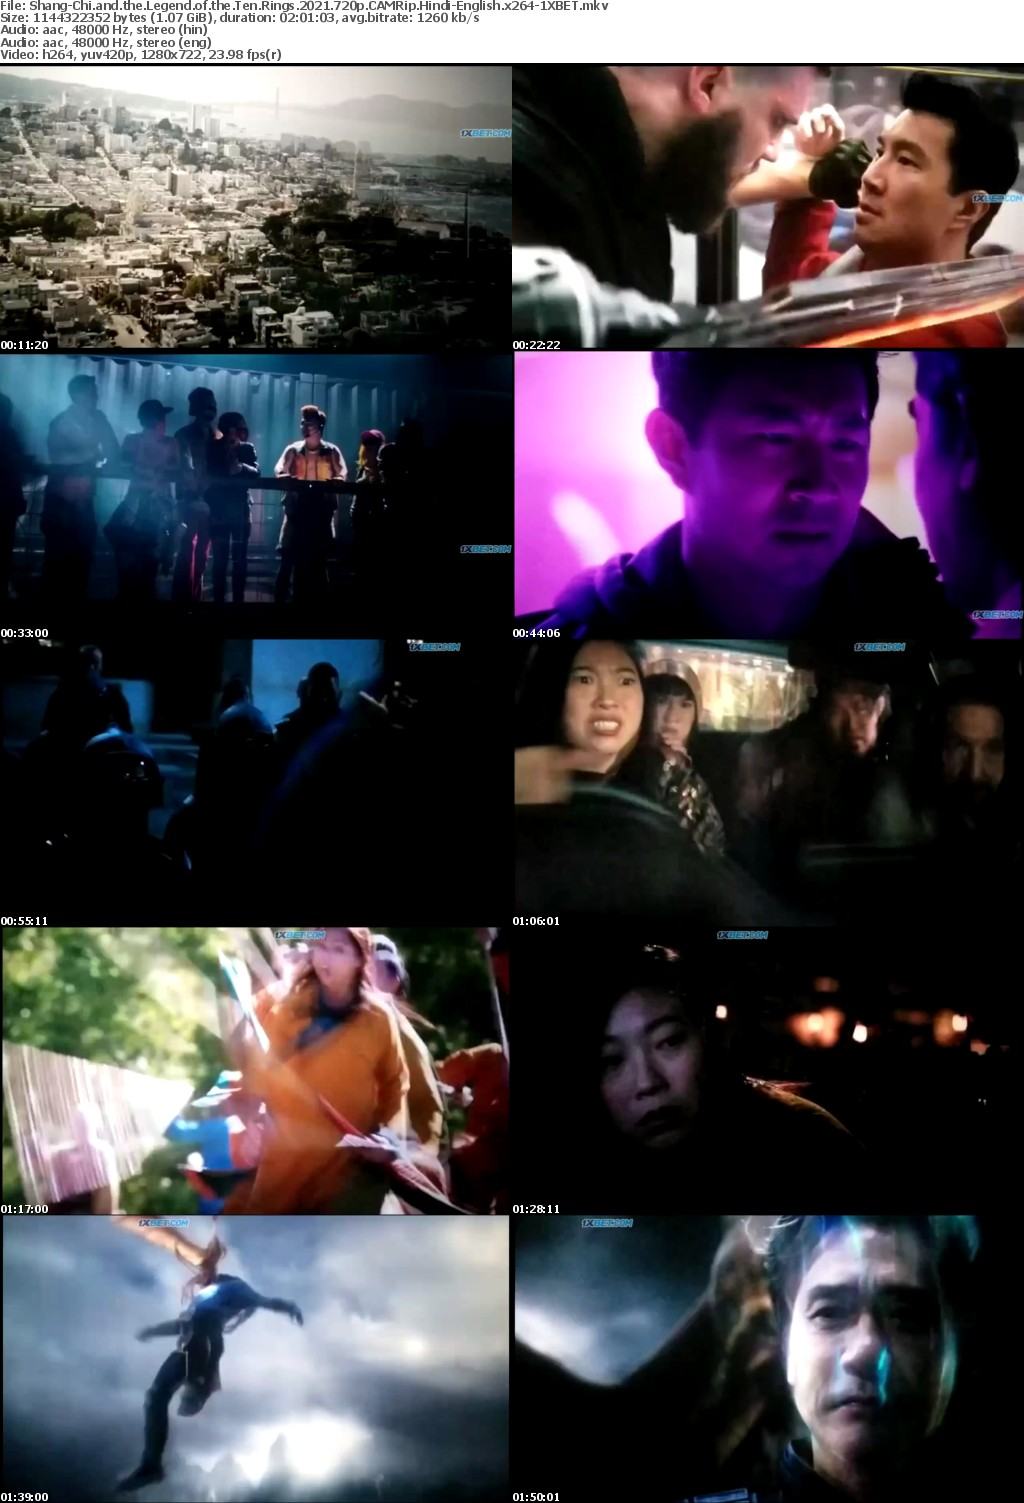 Shang-Chi and the Legend of the Ten Rings (2021) 720p CAMRip Hindi + English x264